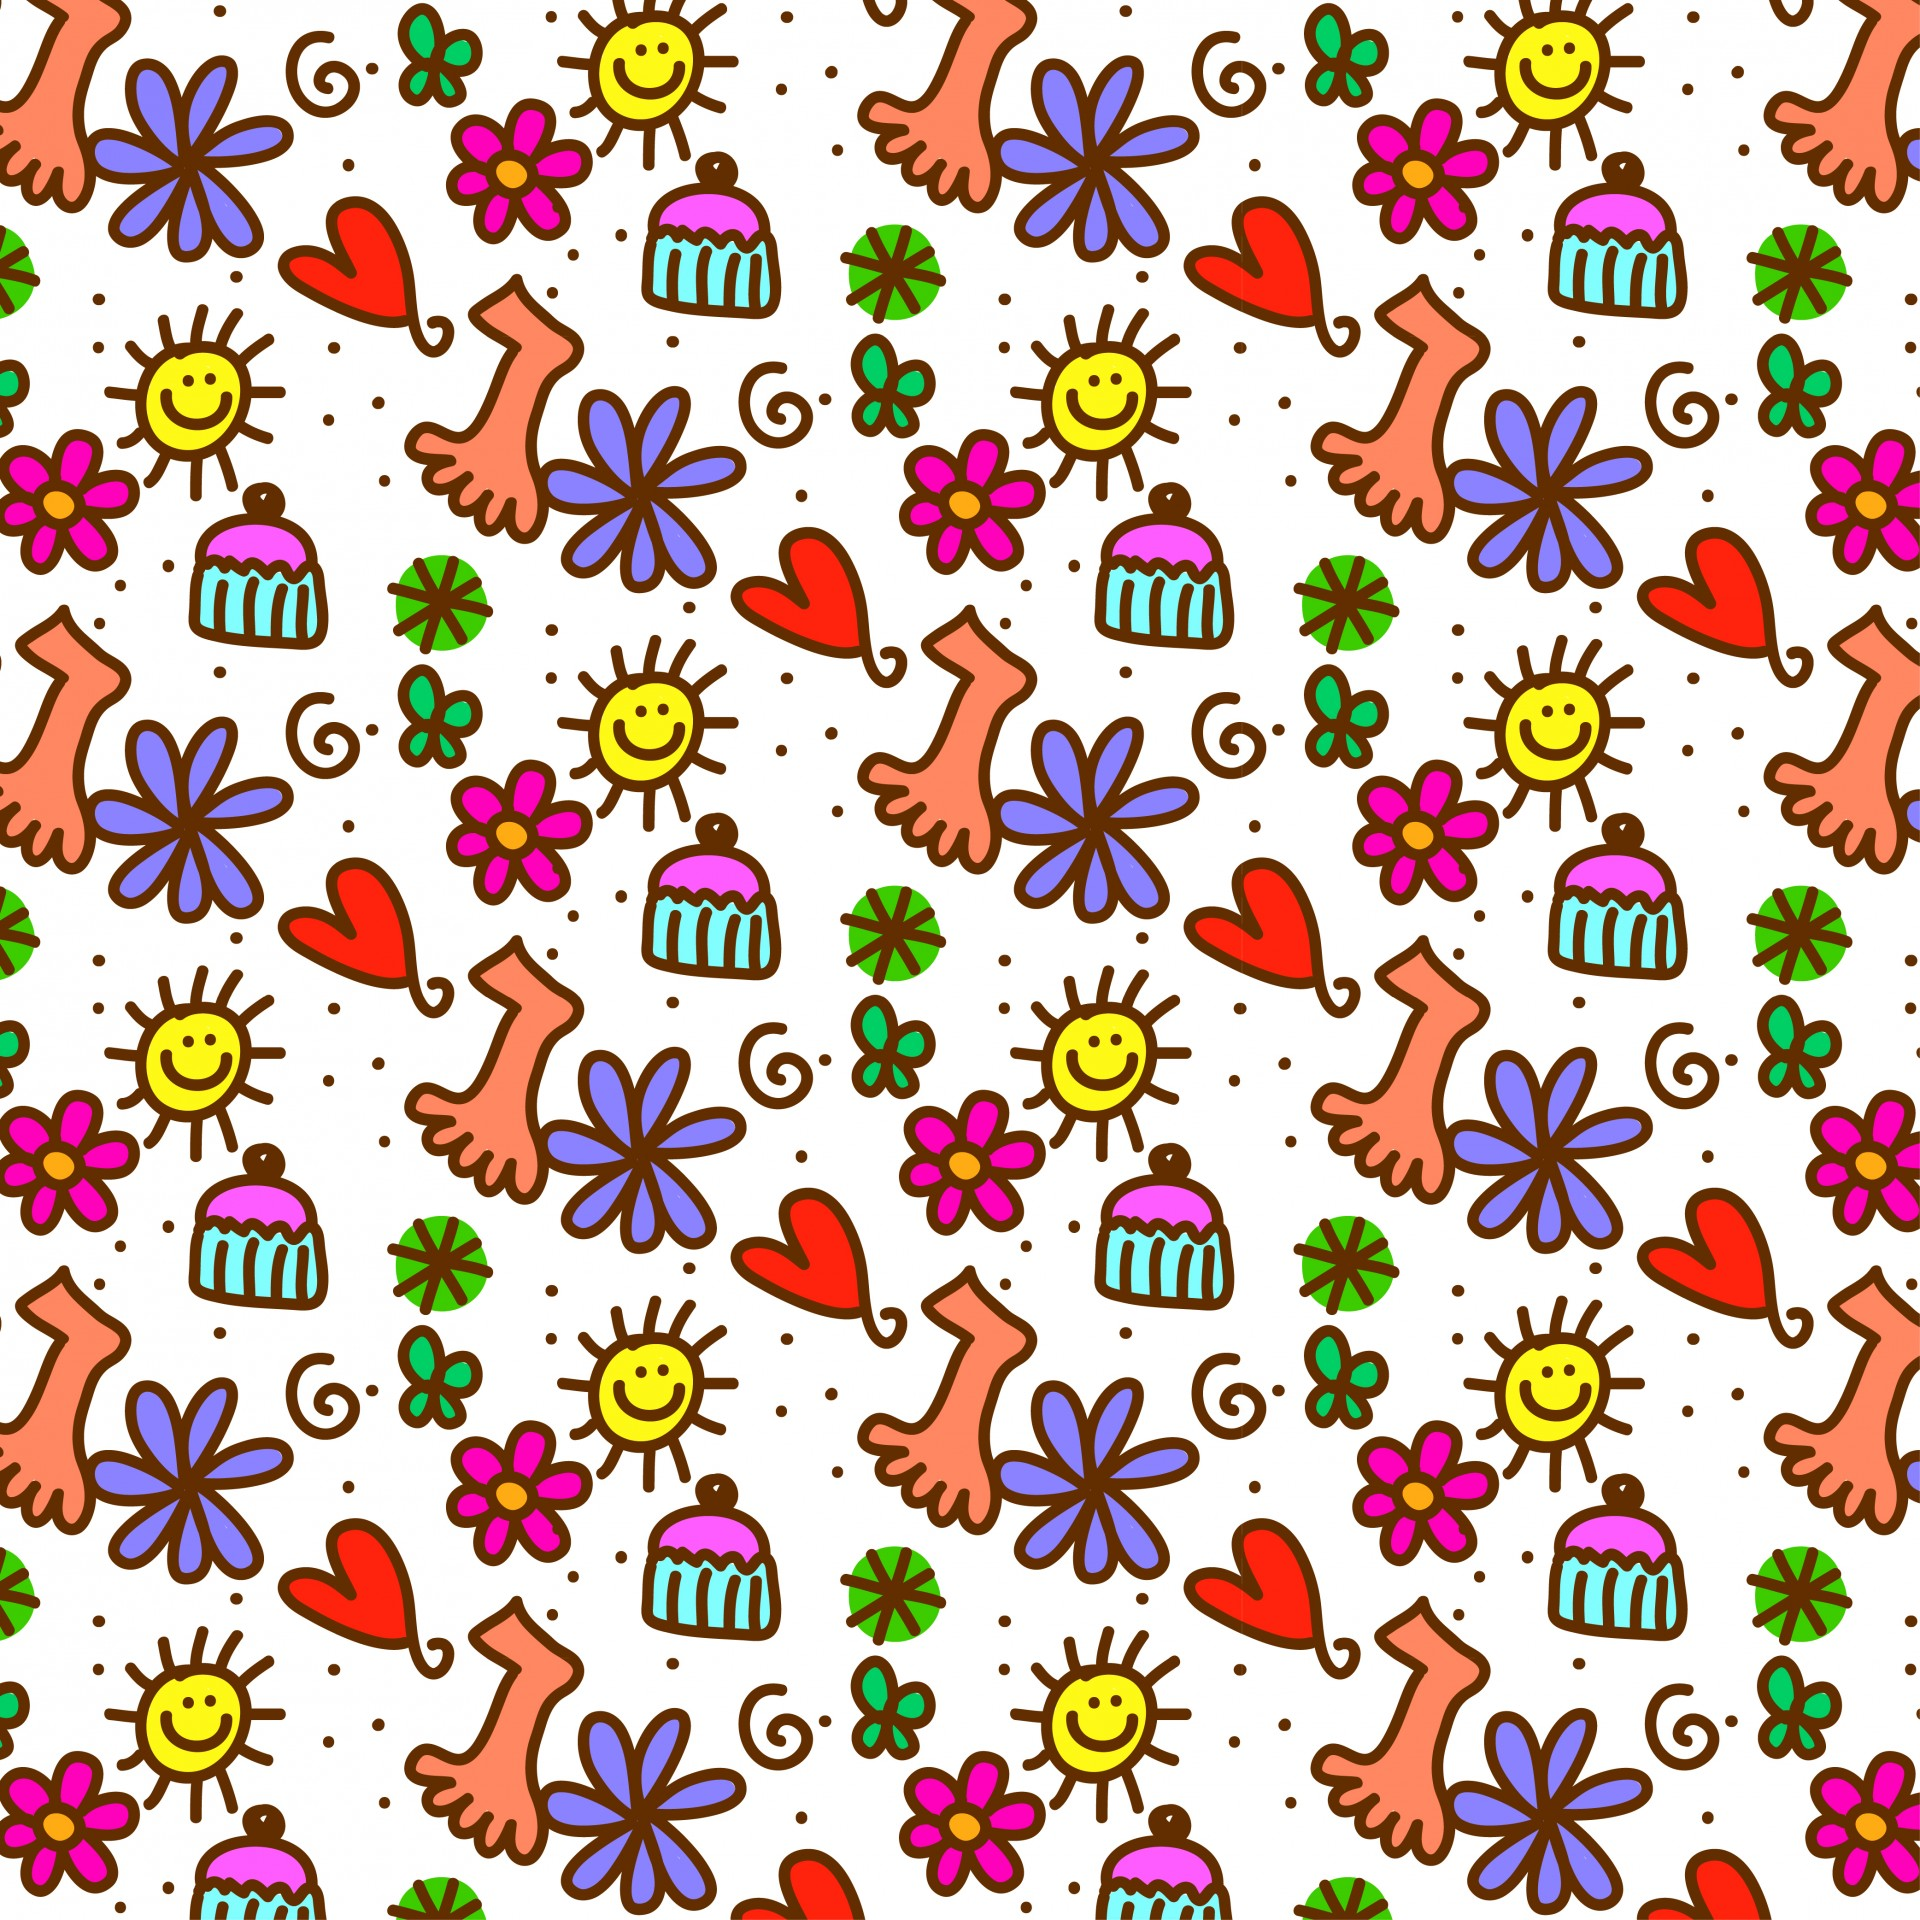 Cute Kawaii Animal Wallpapers Doodle Wallpaper Free Stock Photo Public Domain Pictures